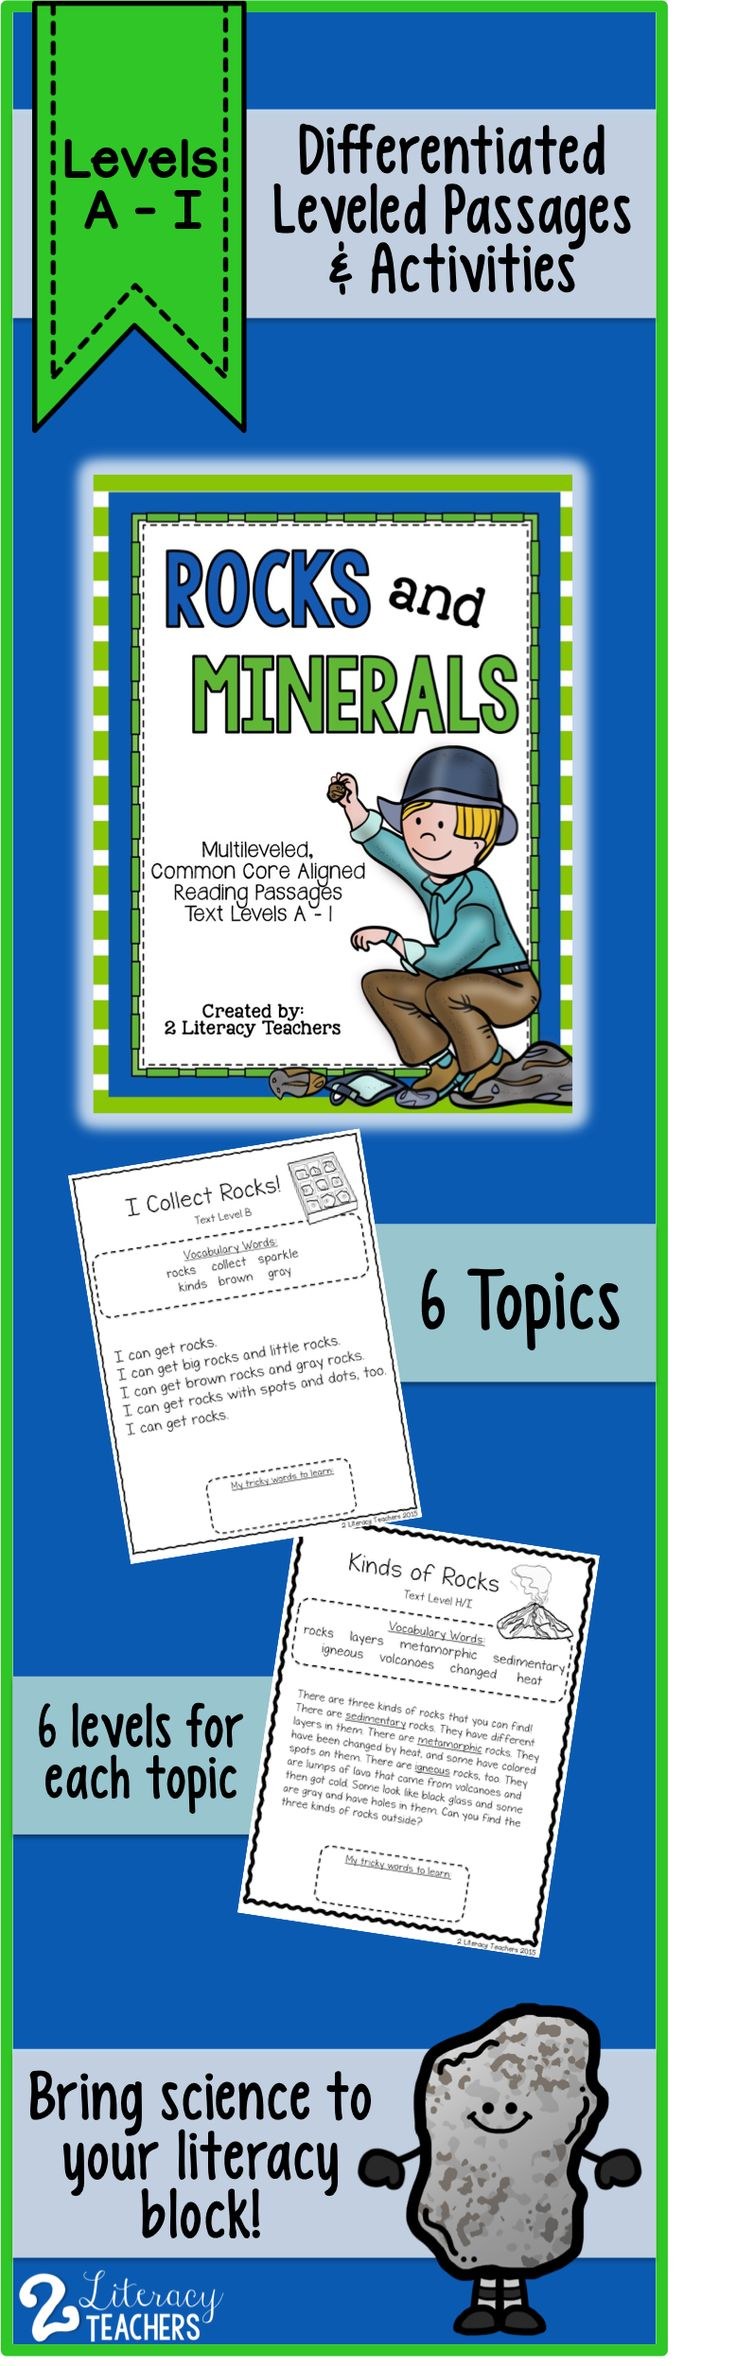 worksheet Leveled Reading Passages reading passages 17 rocks and minerals